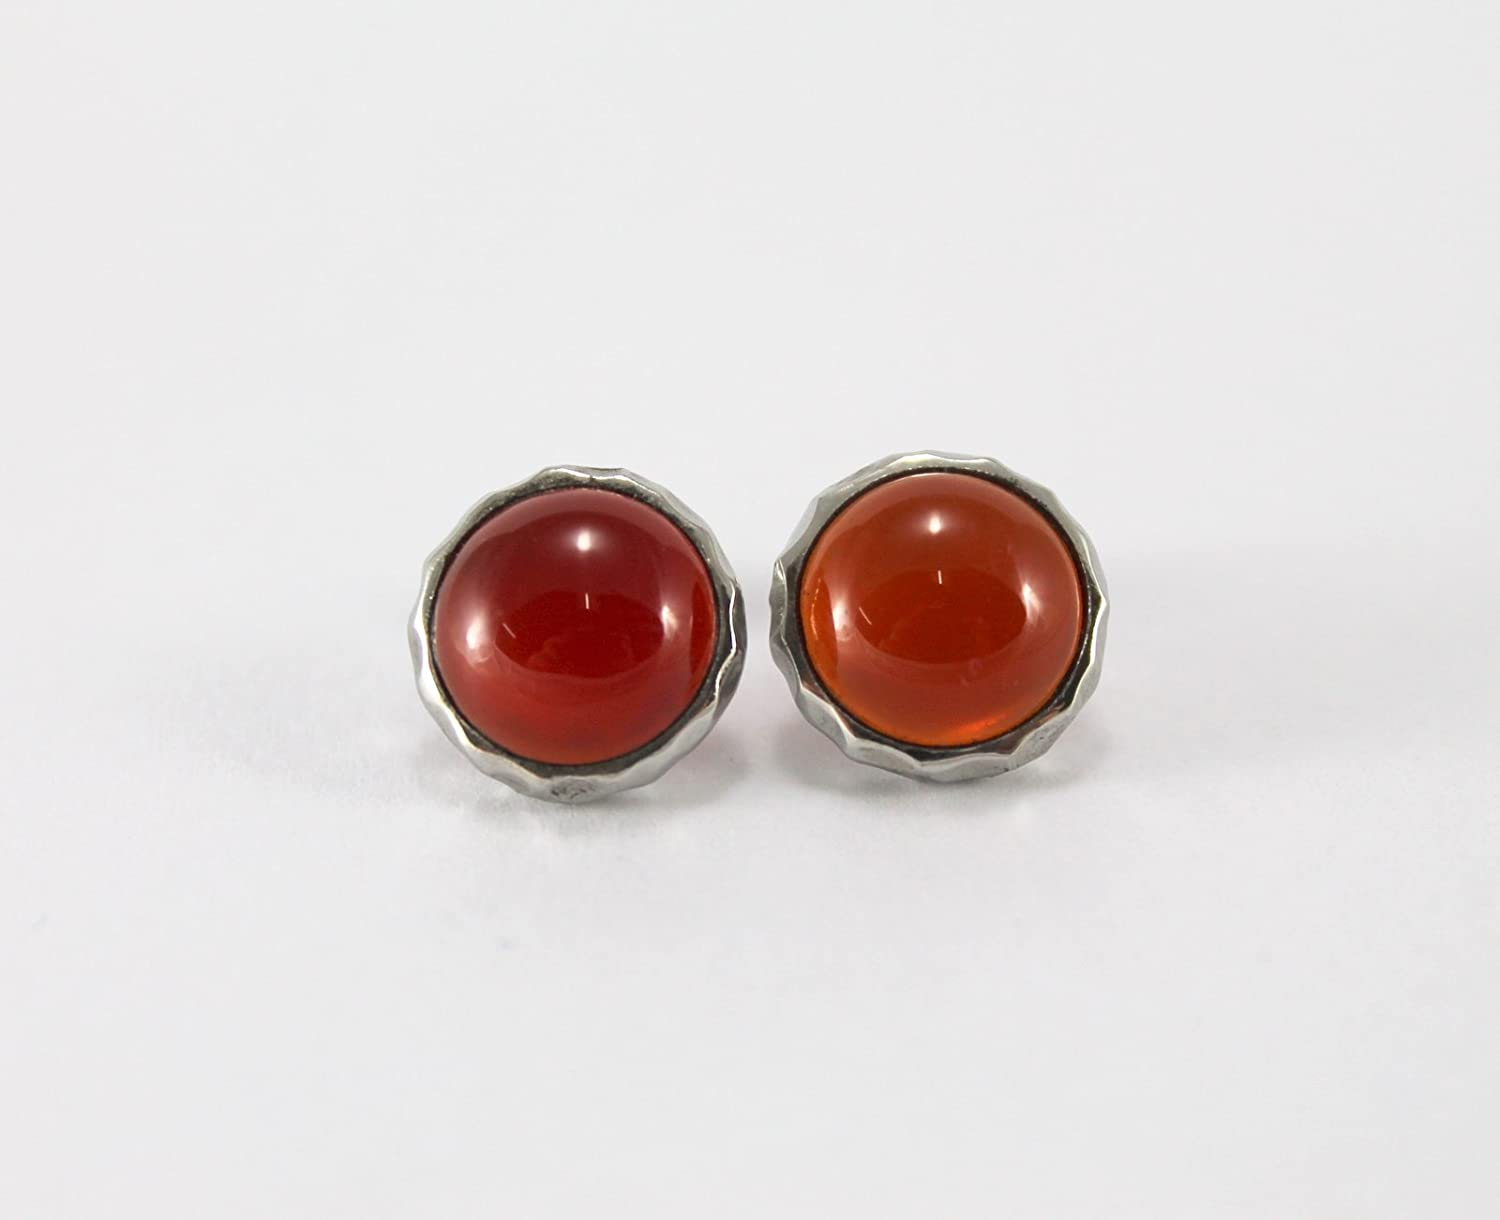 Red Agate Gemstone Round Shape Earring Studs Hammering Texture Design